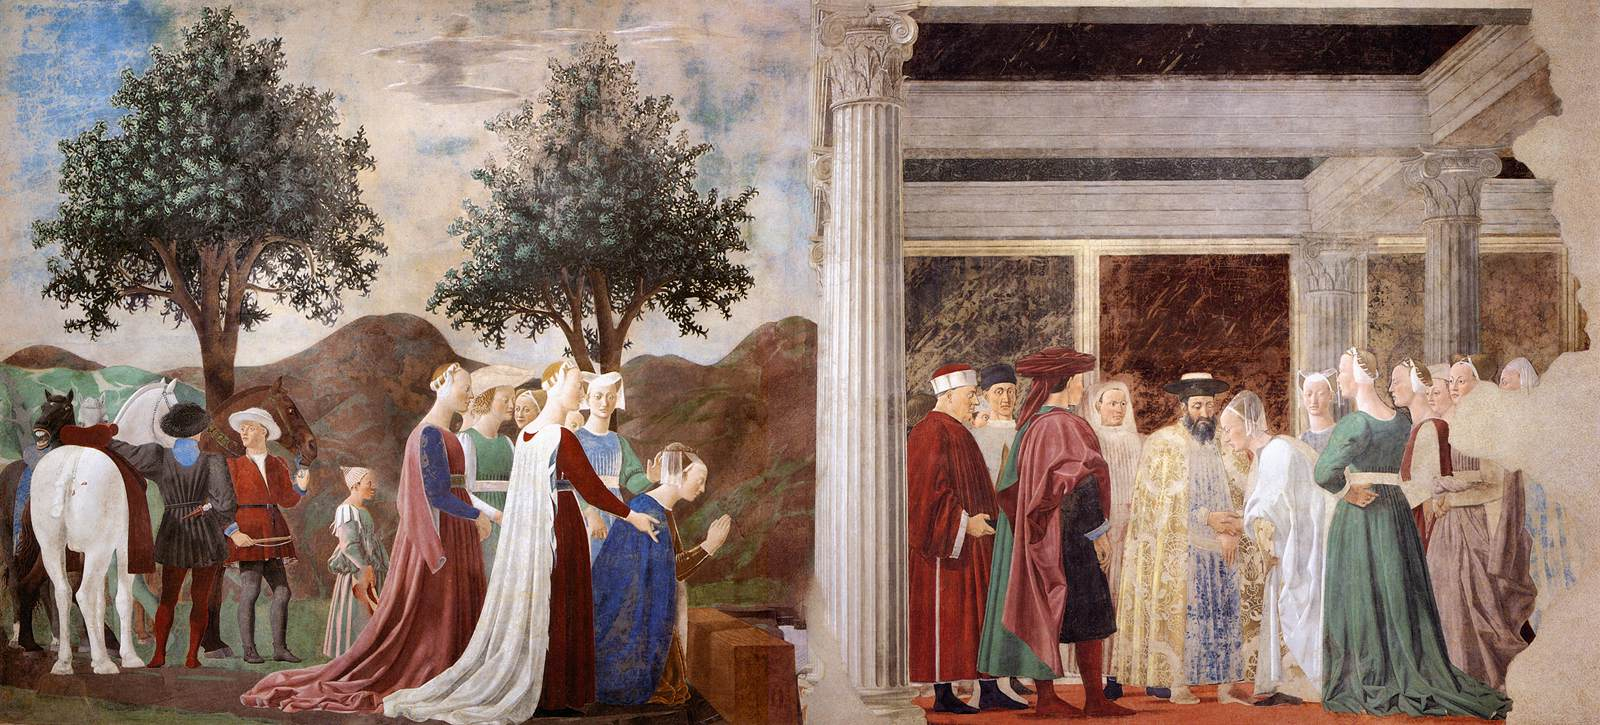 Piero della Francesca 2. Procession of the Queen of Sheba Meeting between the Queen of Sheba and King Solomon WGA17487